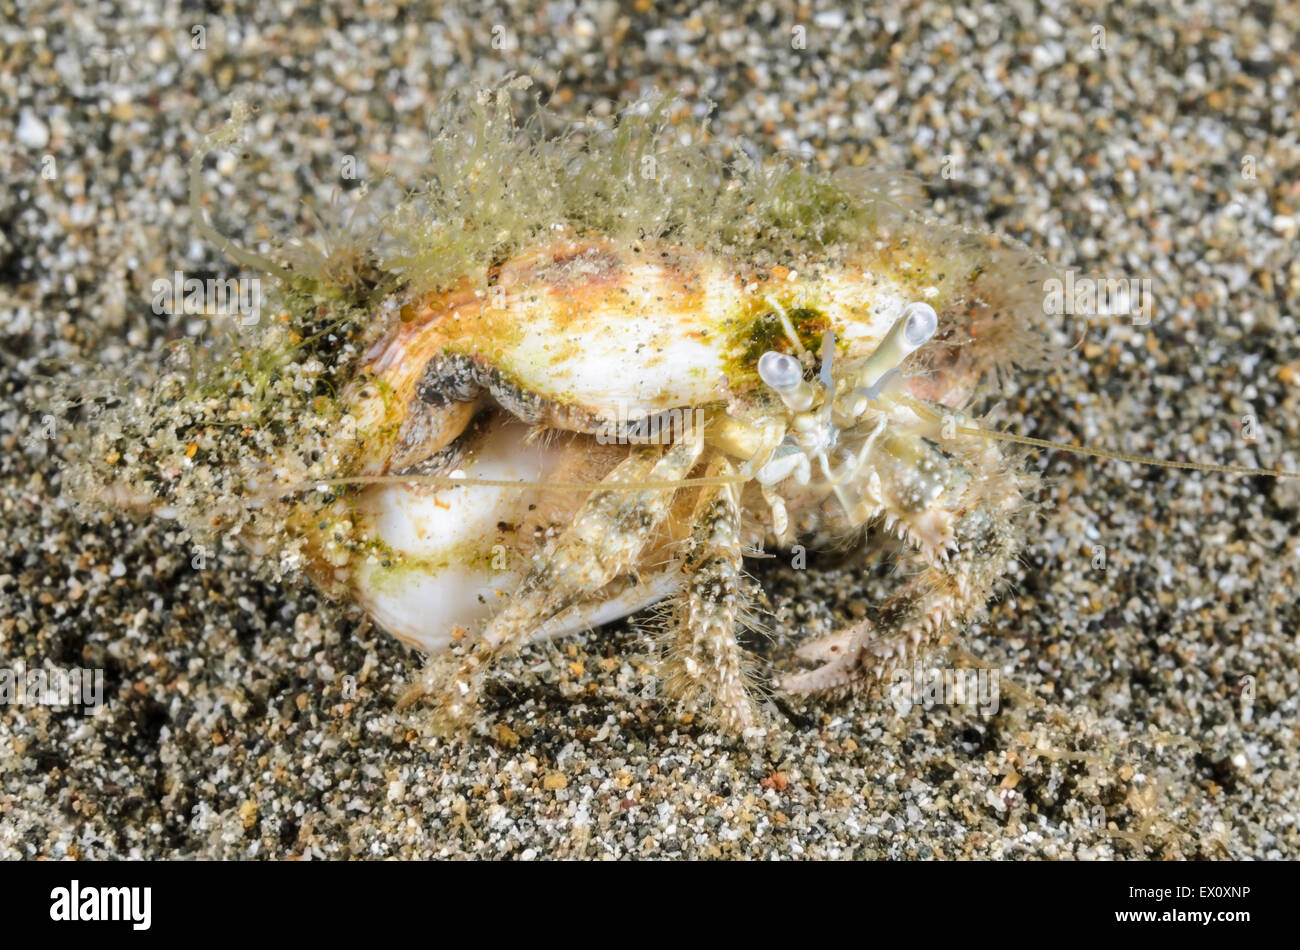 Hermit crab, unknown species, Anilao, Batangas, Philippines, Pacific - Stock Image